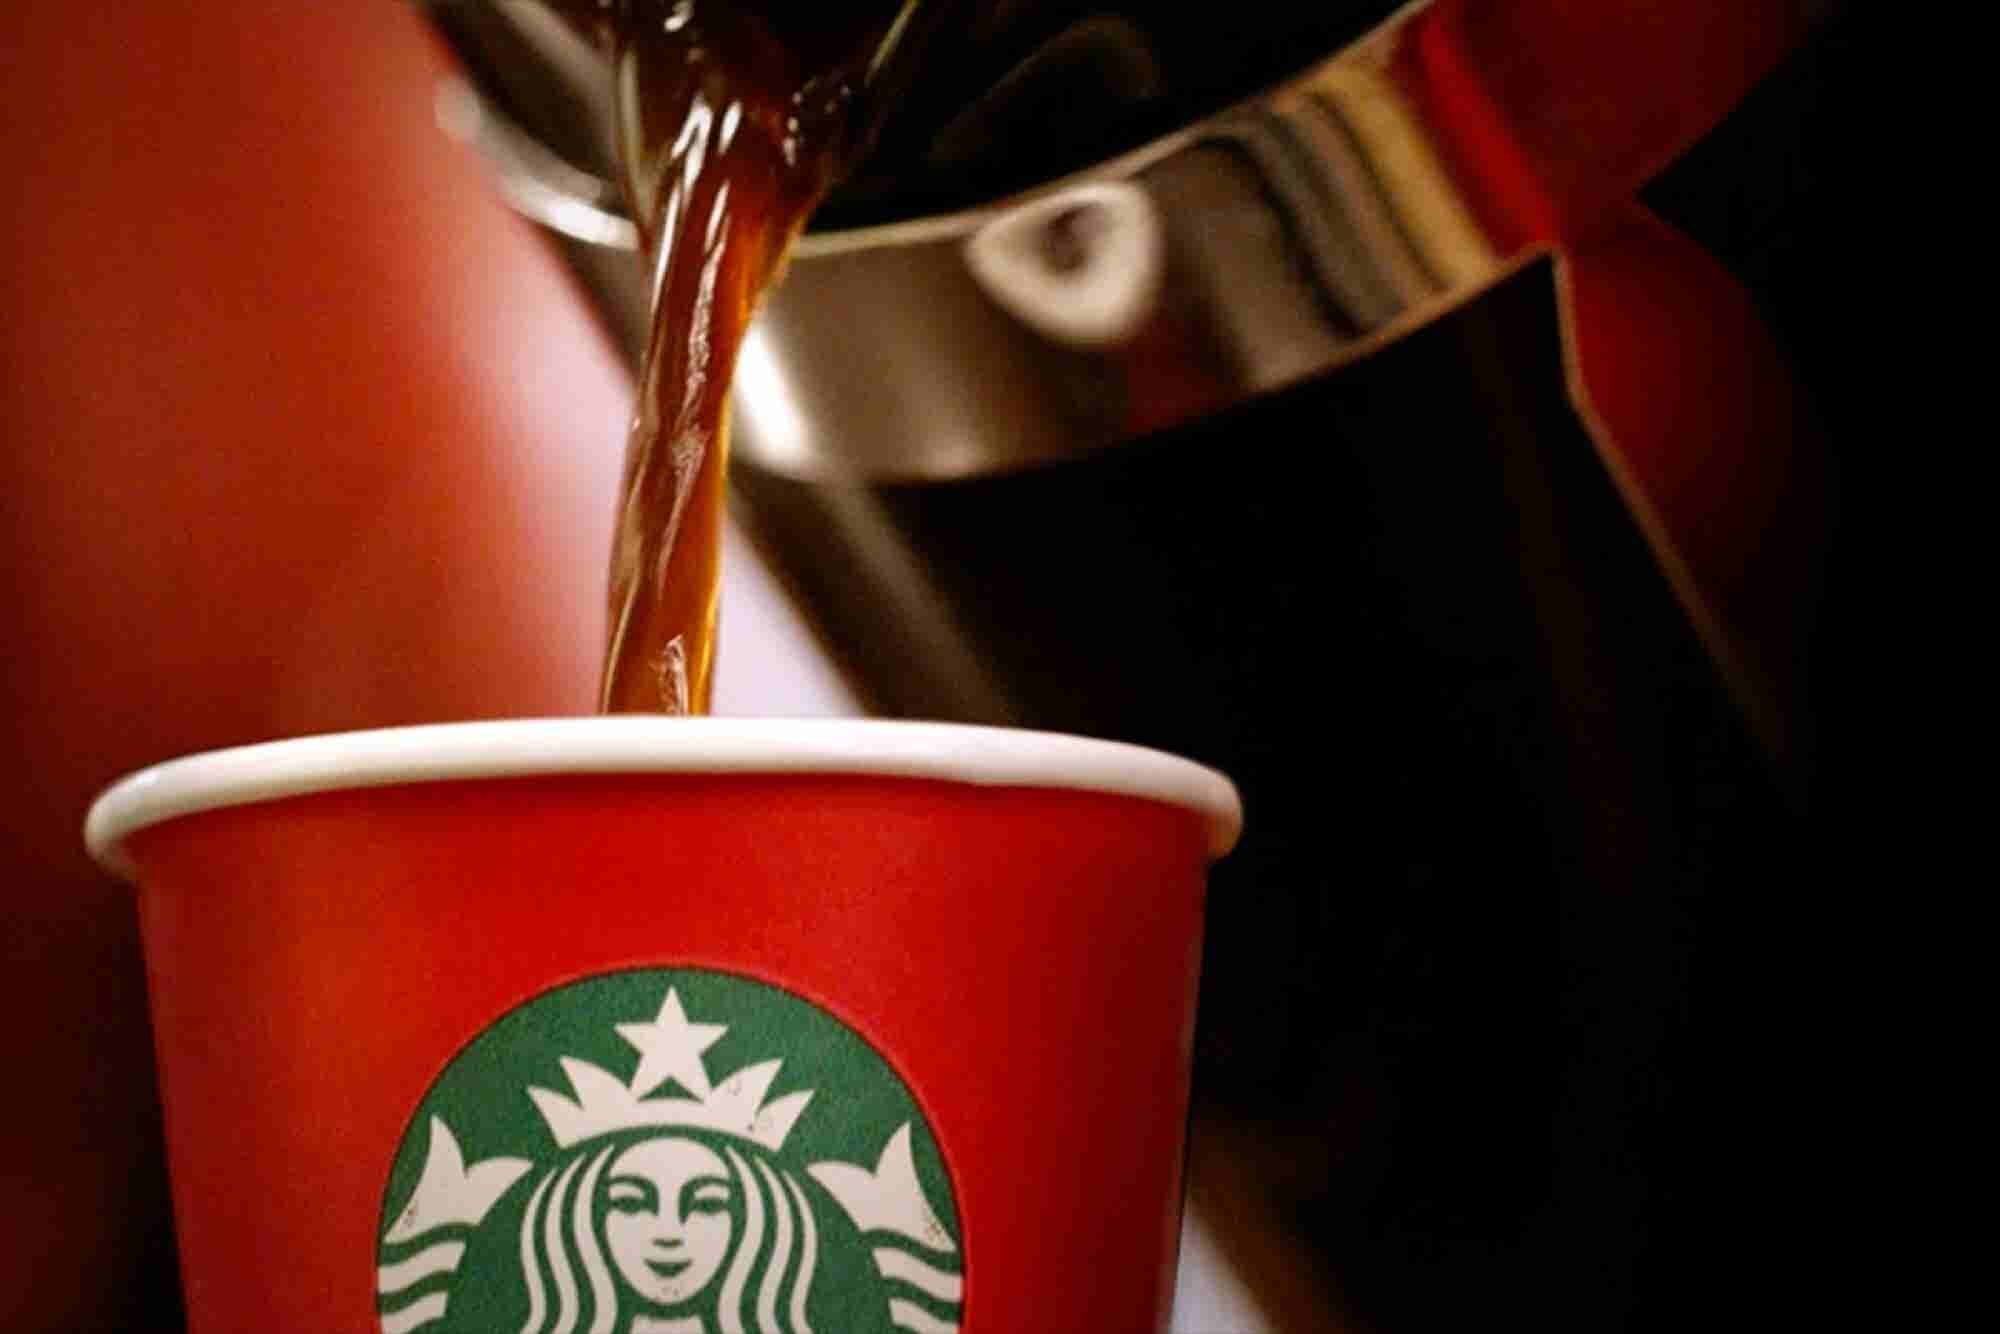 Starbucks Couldn't Buy Better PR Than the Red Cups Coverage. Here's What We Can Learn From It.